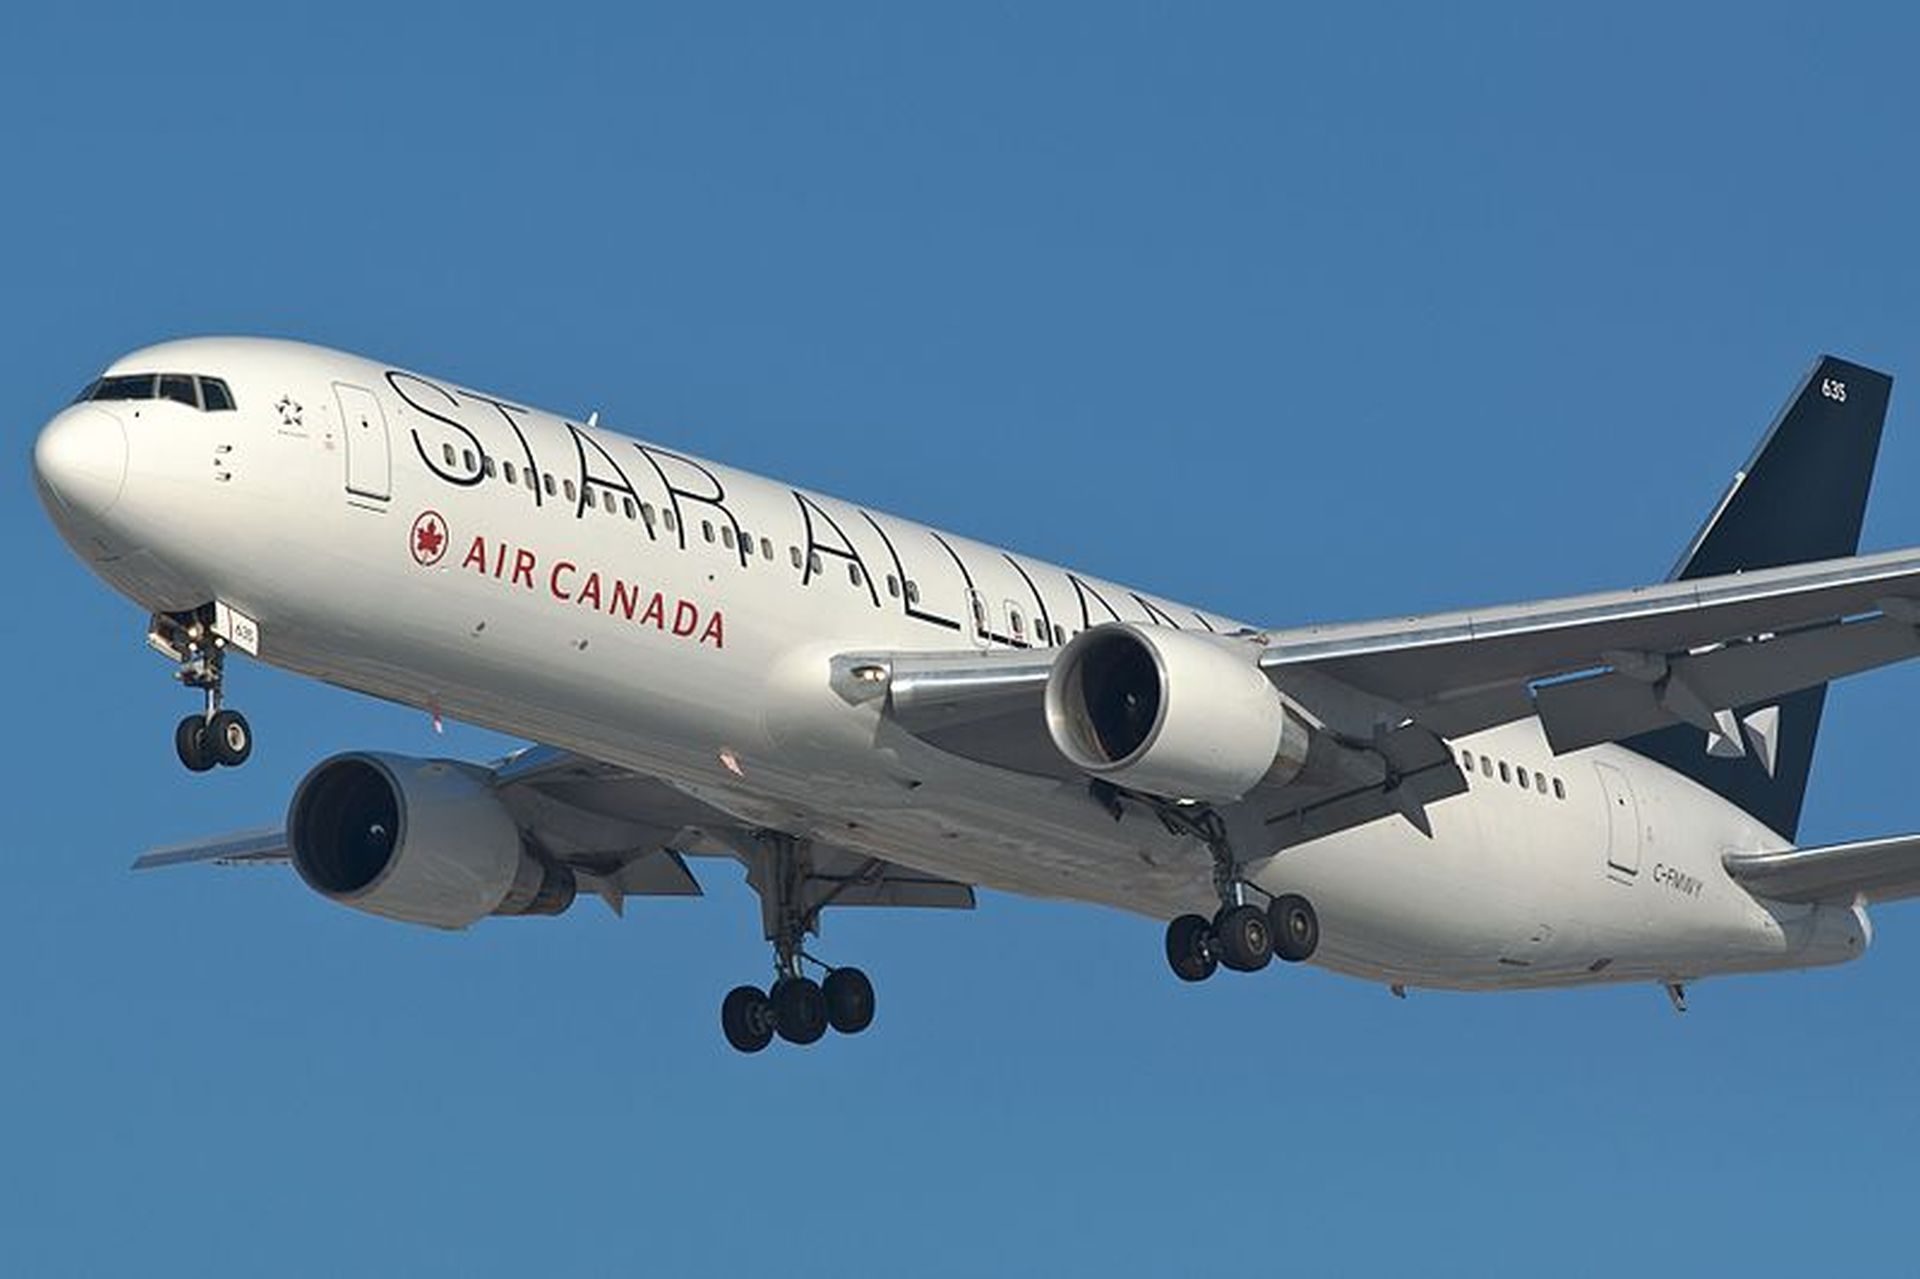 Boeing 767-300ER společnosti Air Canada. Foto: Brian from Toronto, Canada [CC BY-SA (https://creativecommons.org/licenses/by-sa/2.0)]